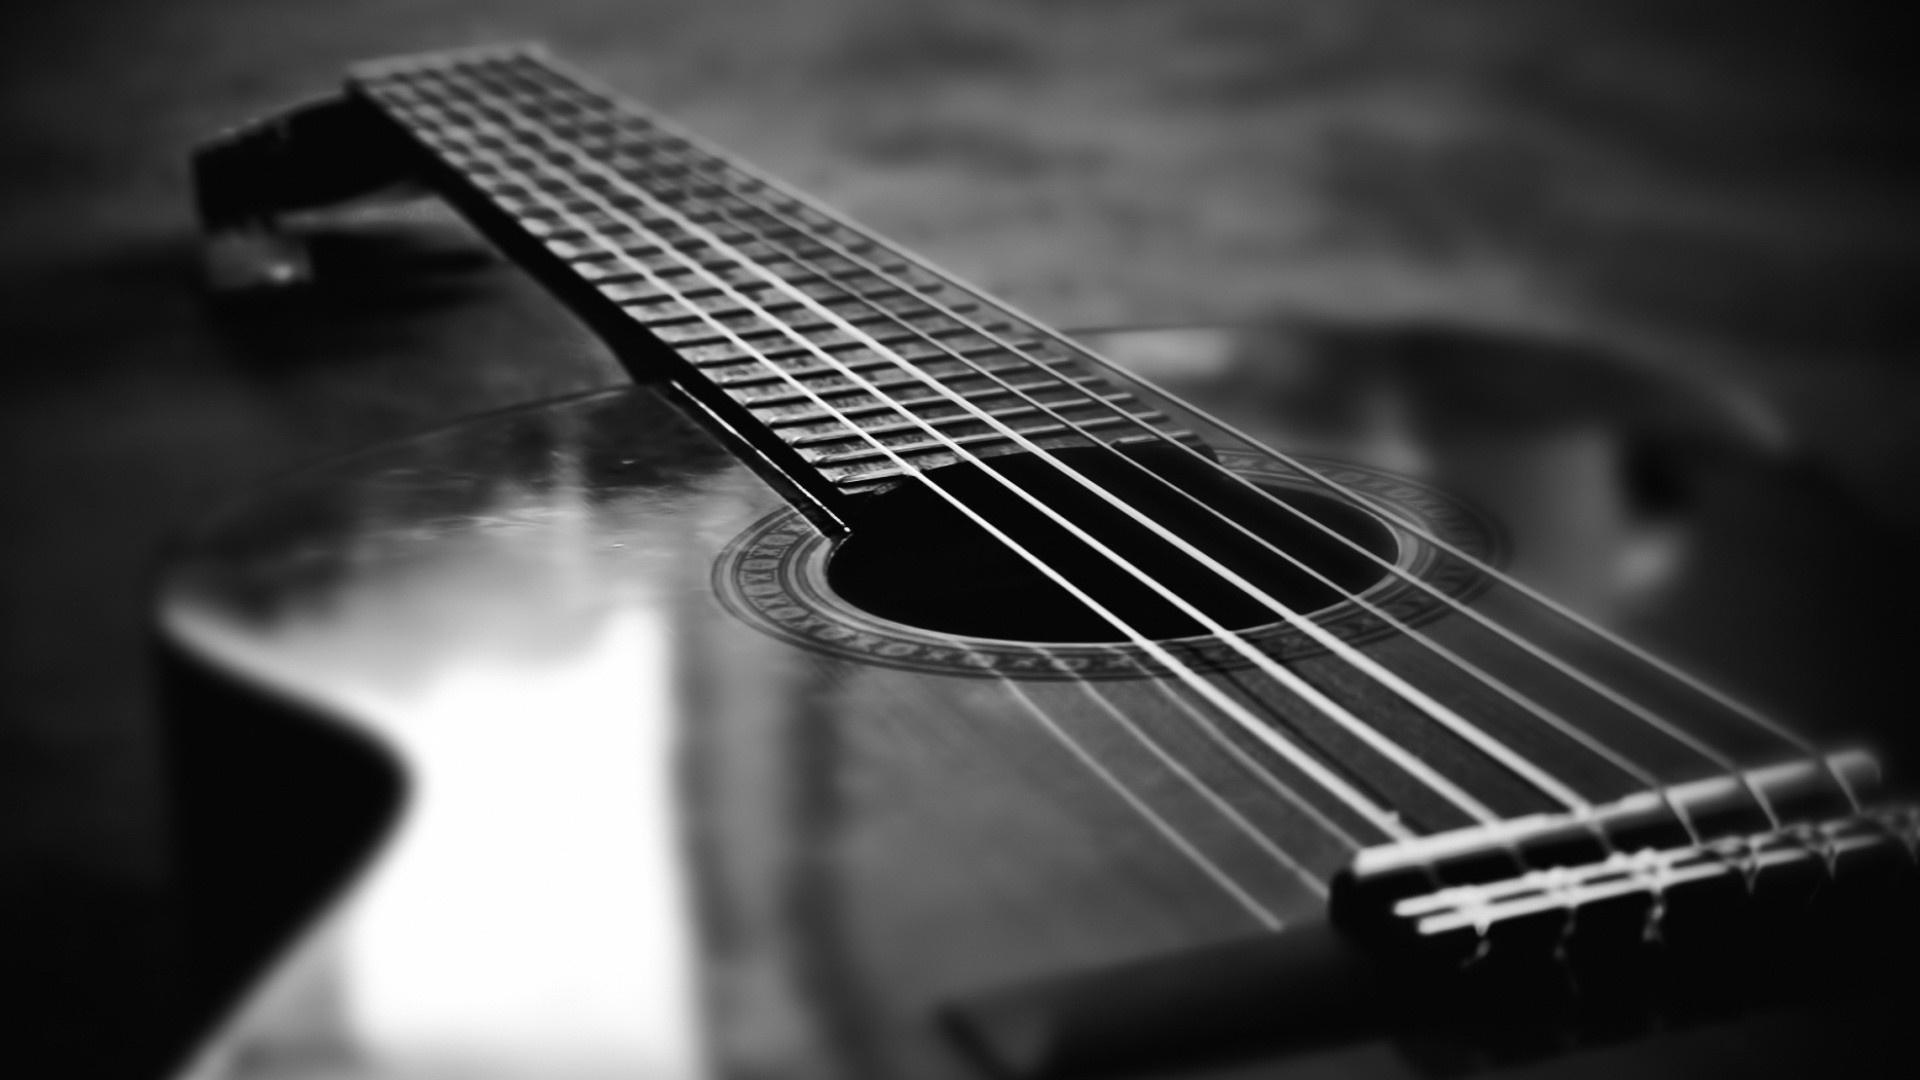 Hd wallpaper guitar - 2015 By Stephen Comments Off On Acoustic Guitar Wallpapers Hd